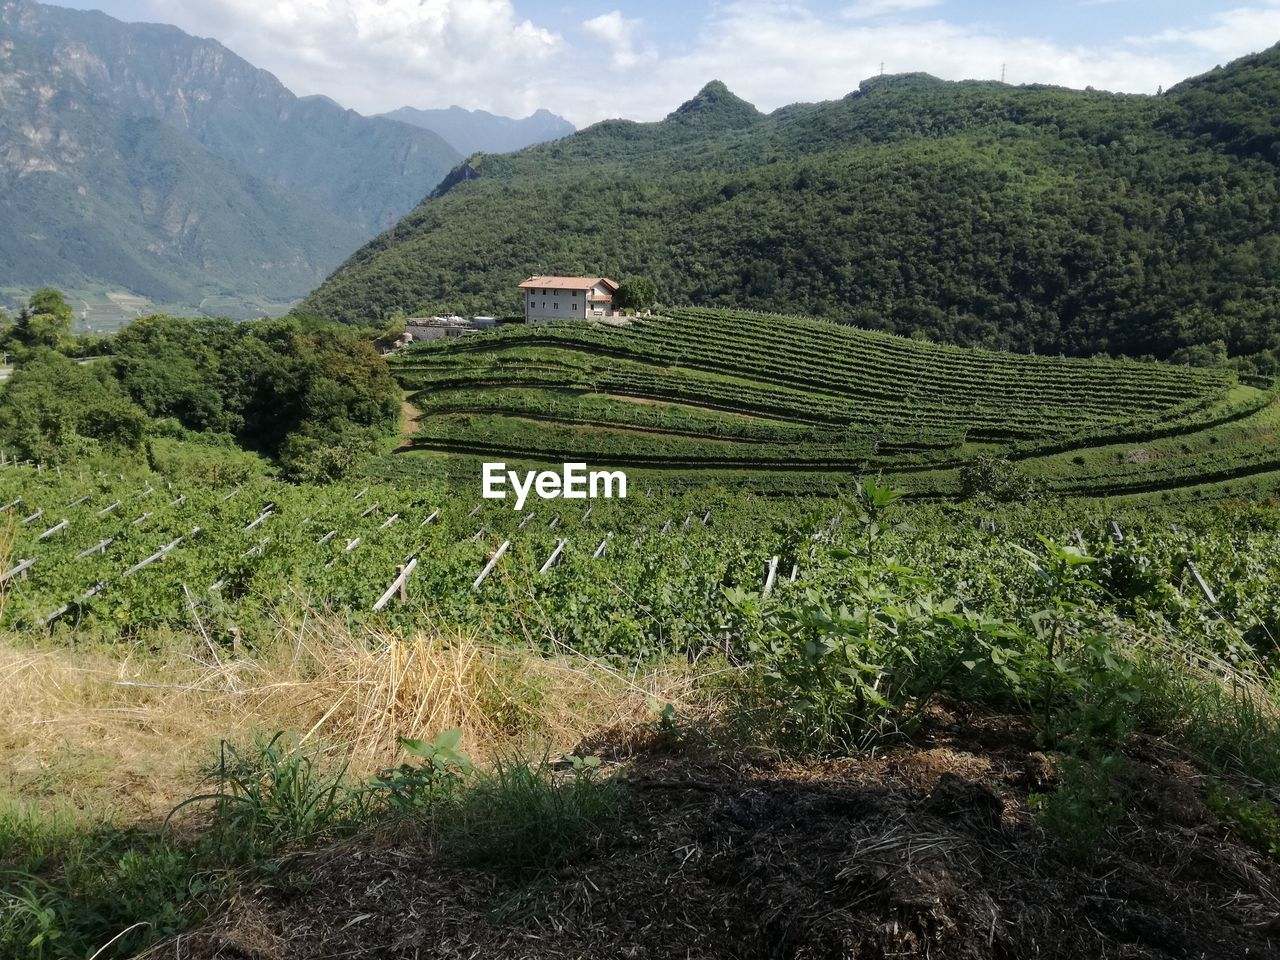 landscape, mountain, scenics - nature, growth, plant, environment, agriculture, beauty in nature, field, land, green color, tranquil scene, tranquility, rural scene, crop, no people, nature, farm, mountain range, tree, outdoors, tea crop, plantation